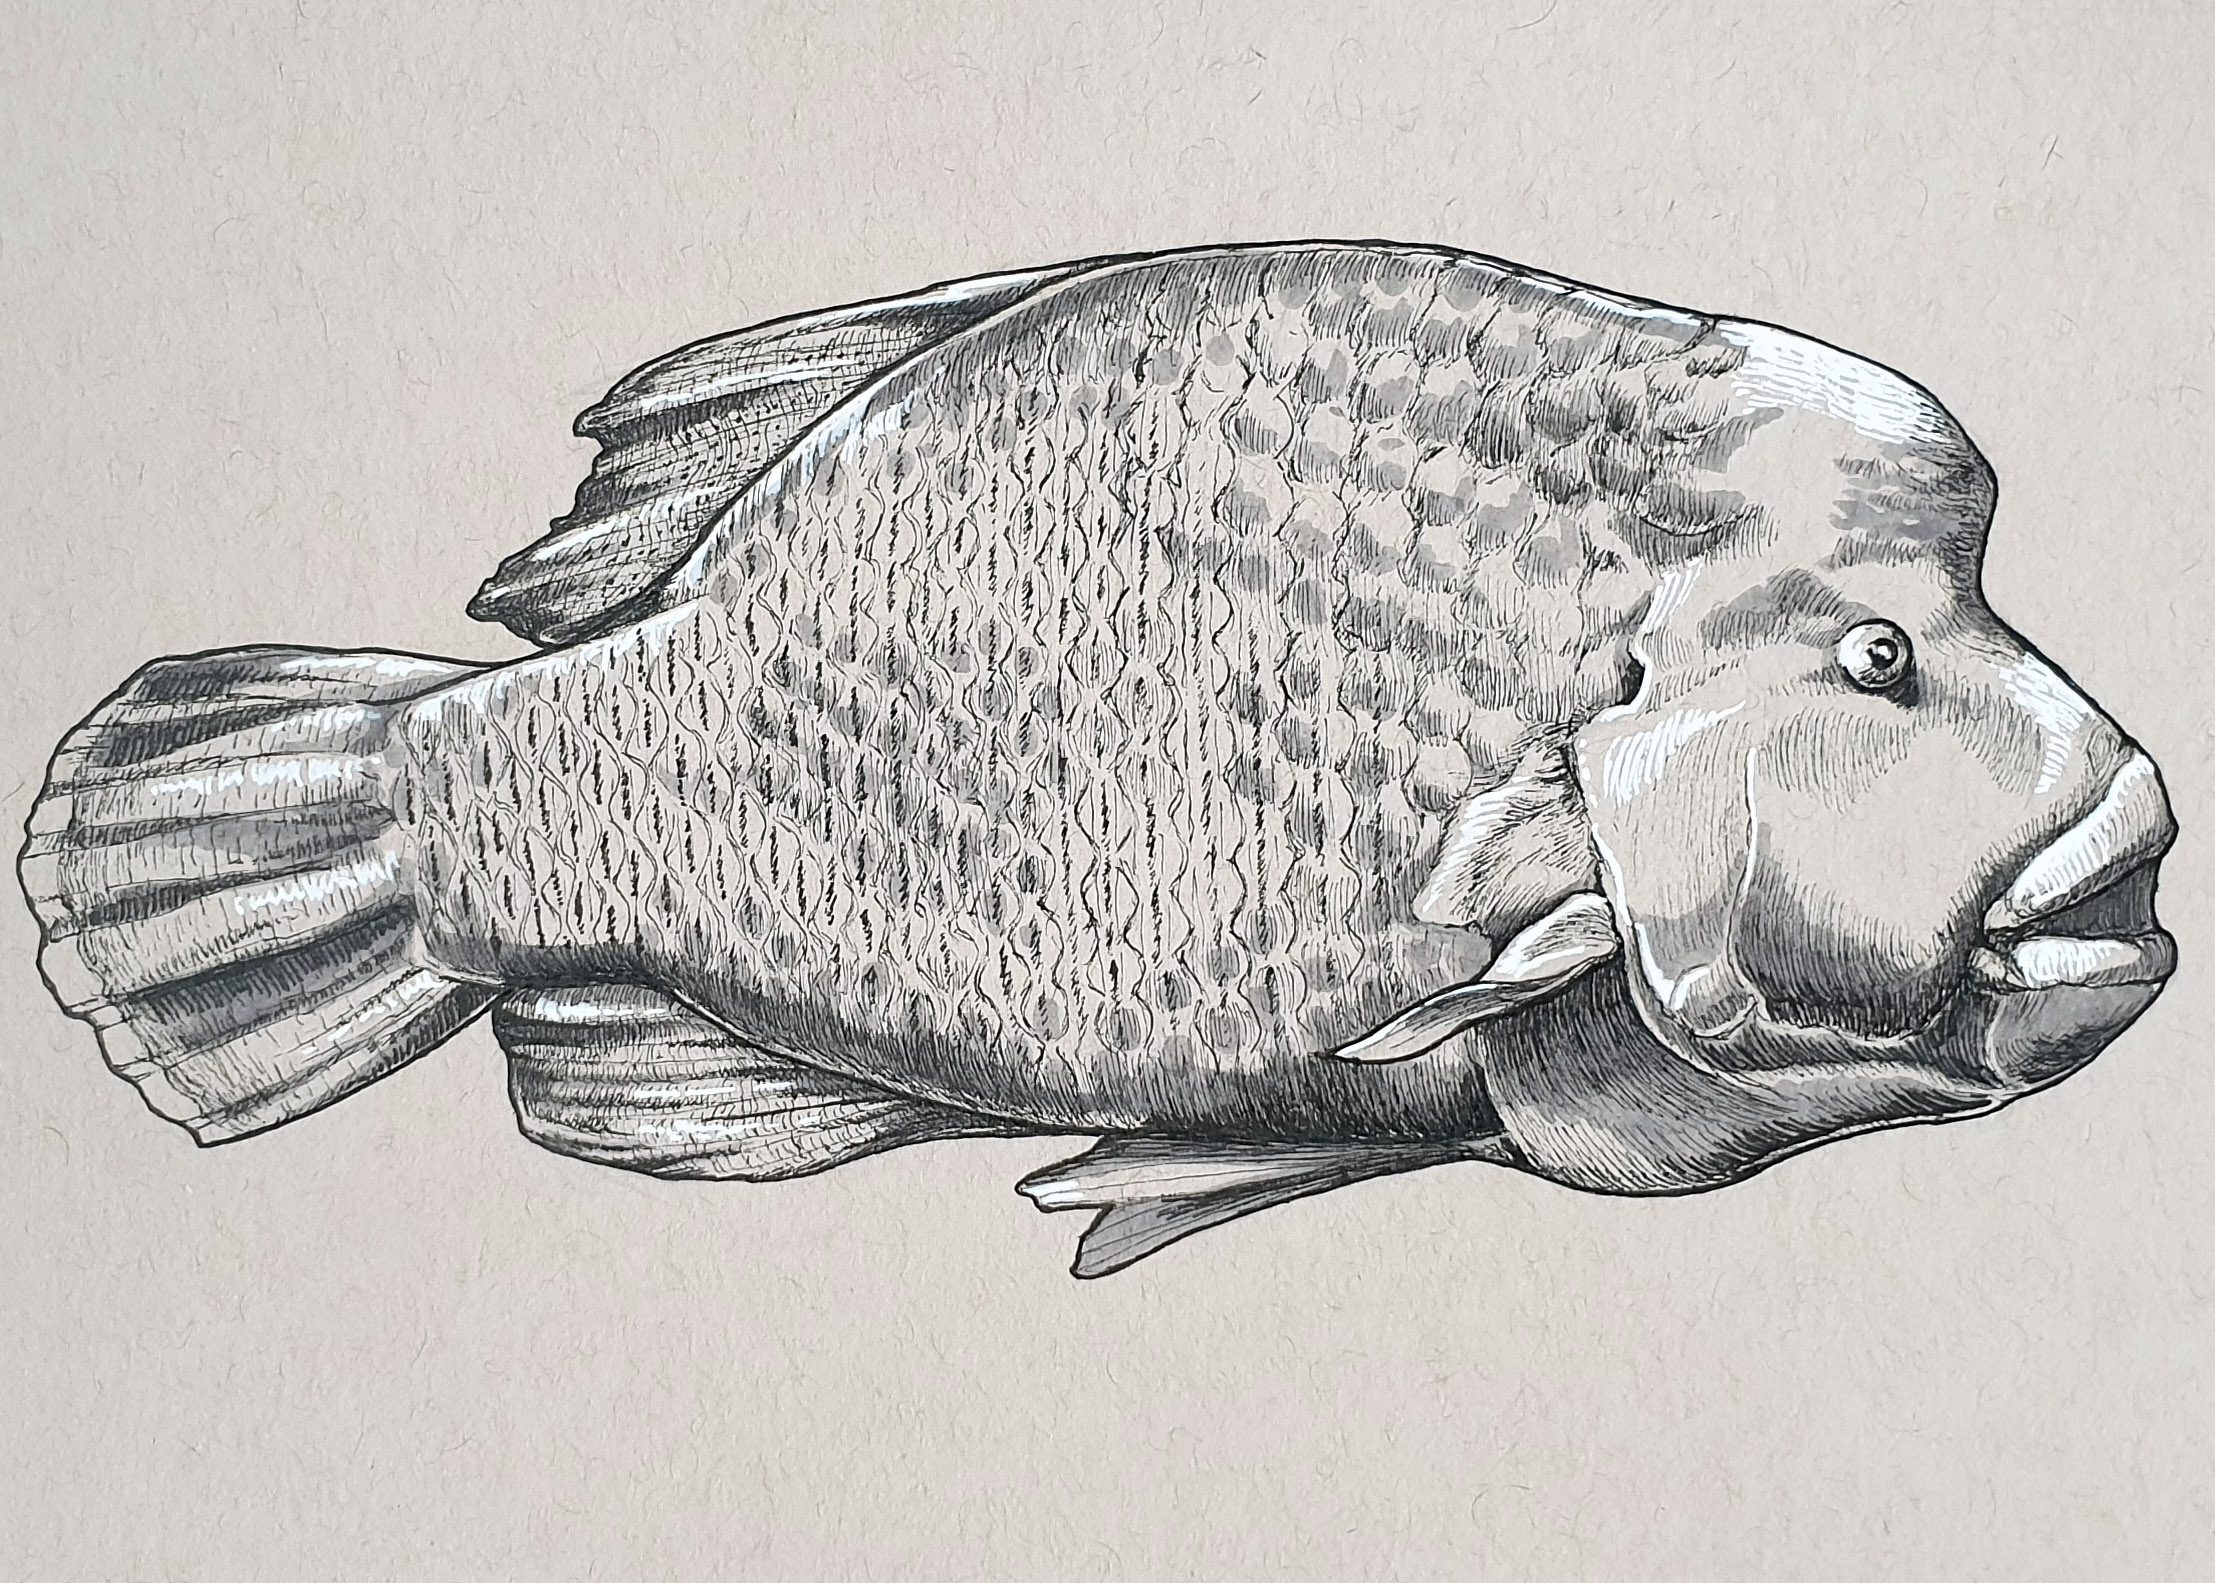 Day 29: Humphead Wrasse